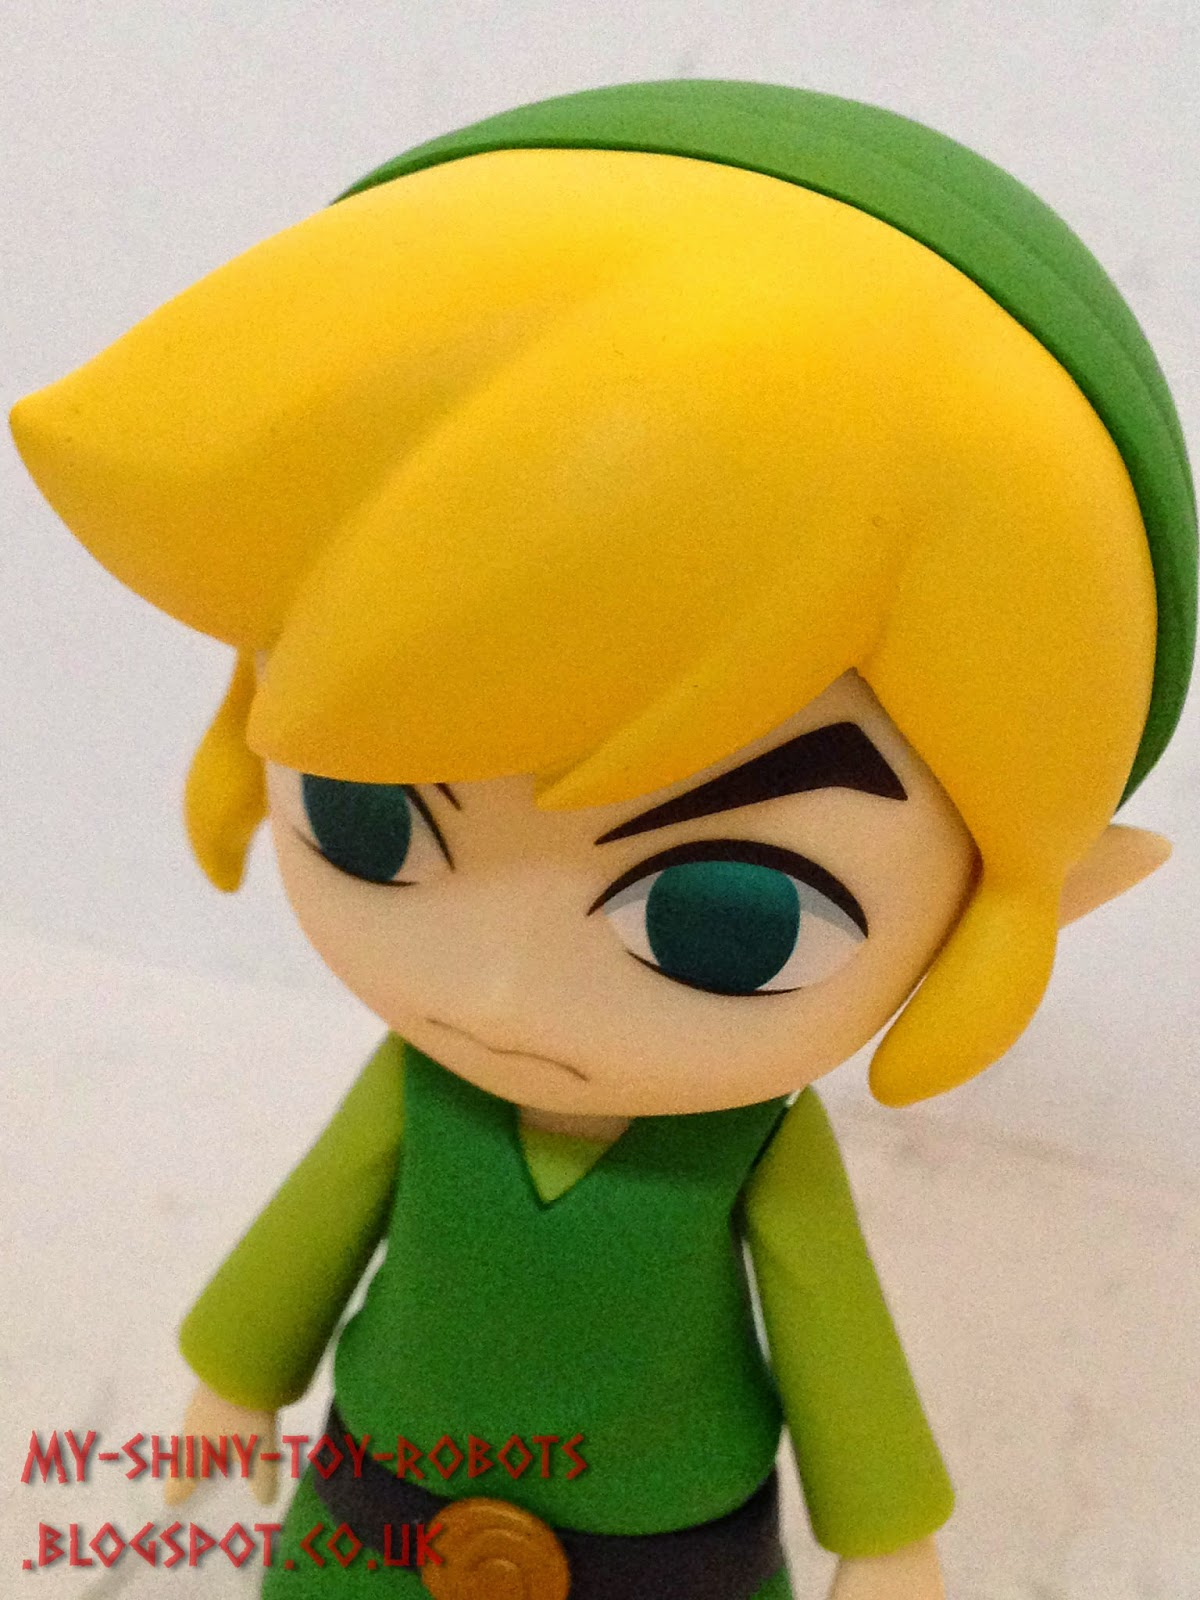 Nendoroid Link (Wind Waker version)